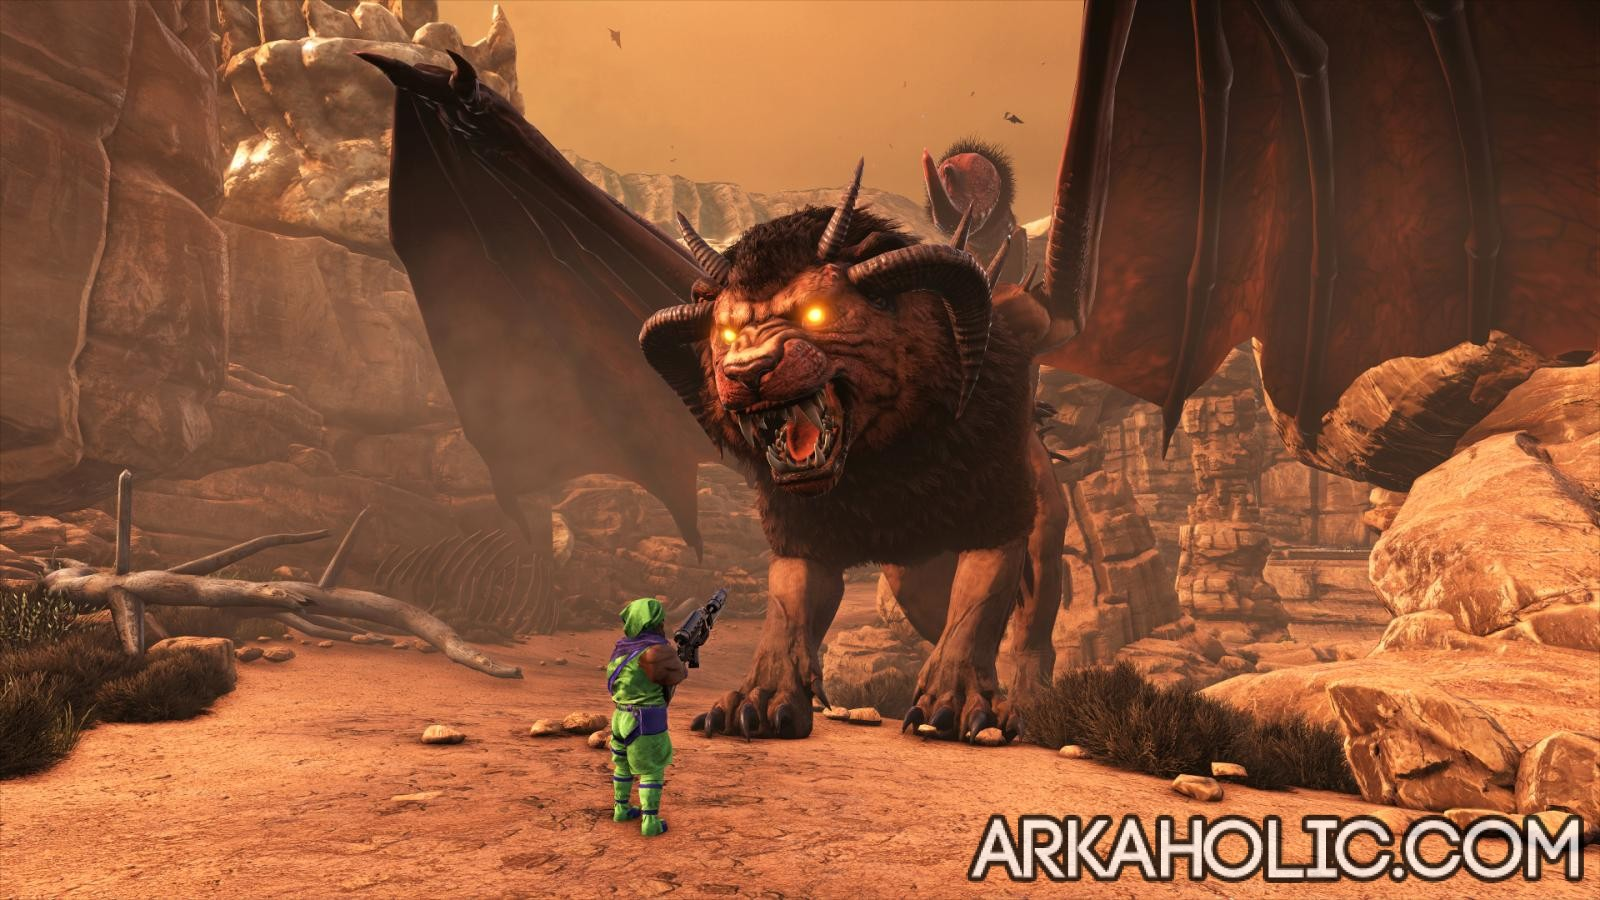 Manticore Tips & Guide - How to Defeat the Manticore in Ark